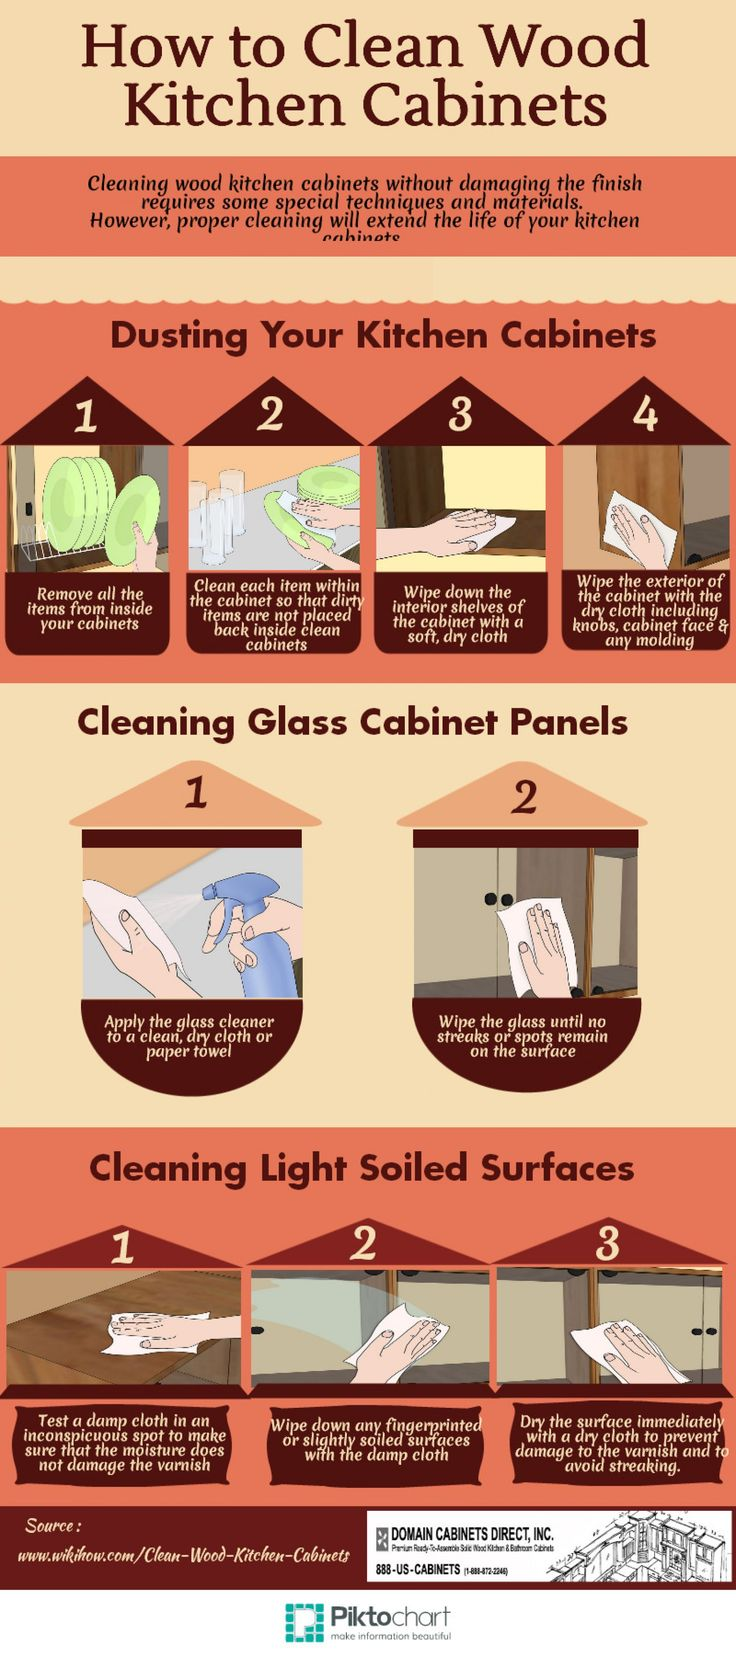 how to clean kitchen cabinets cleaning kitchen cabinets How to clean wood kitchen cabinets